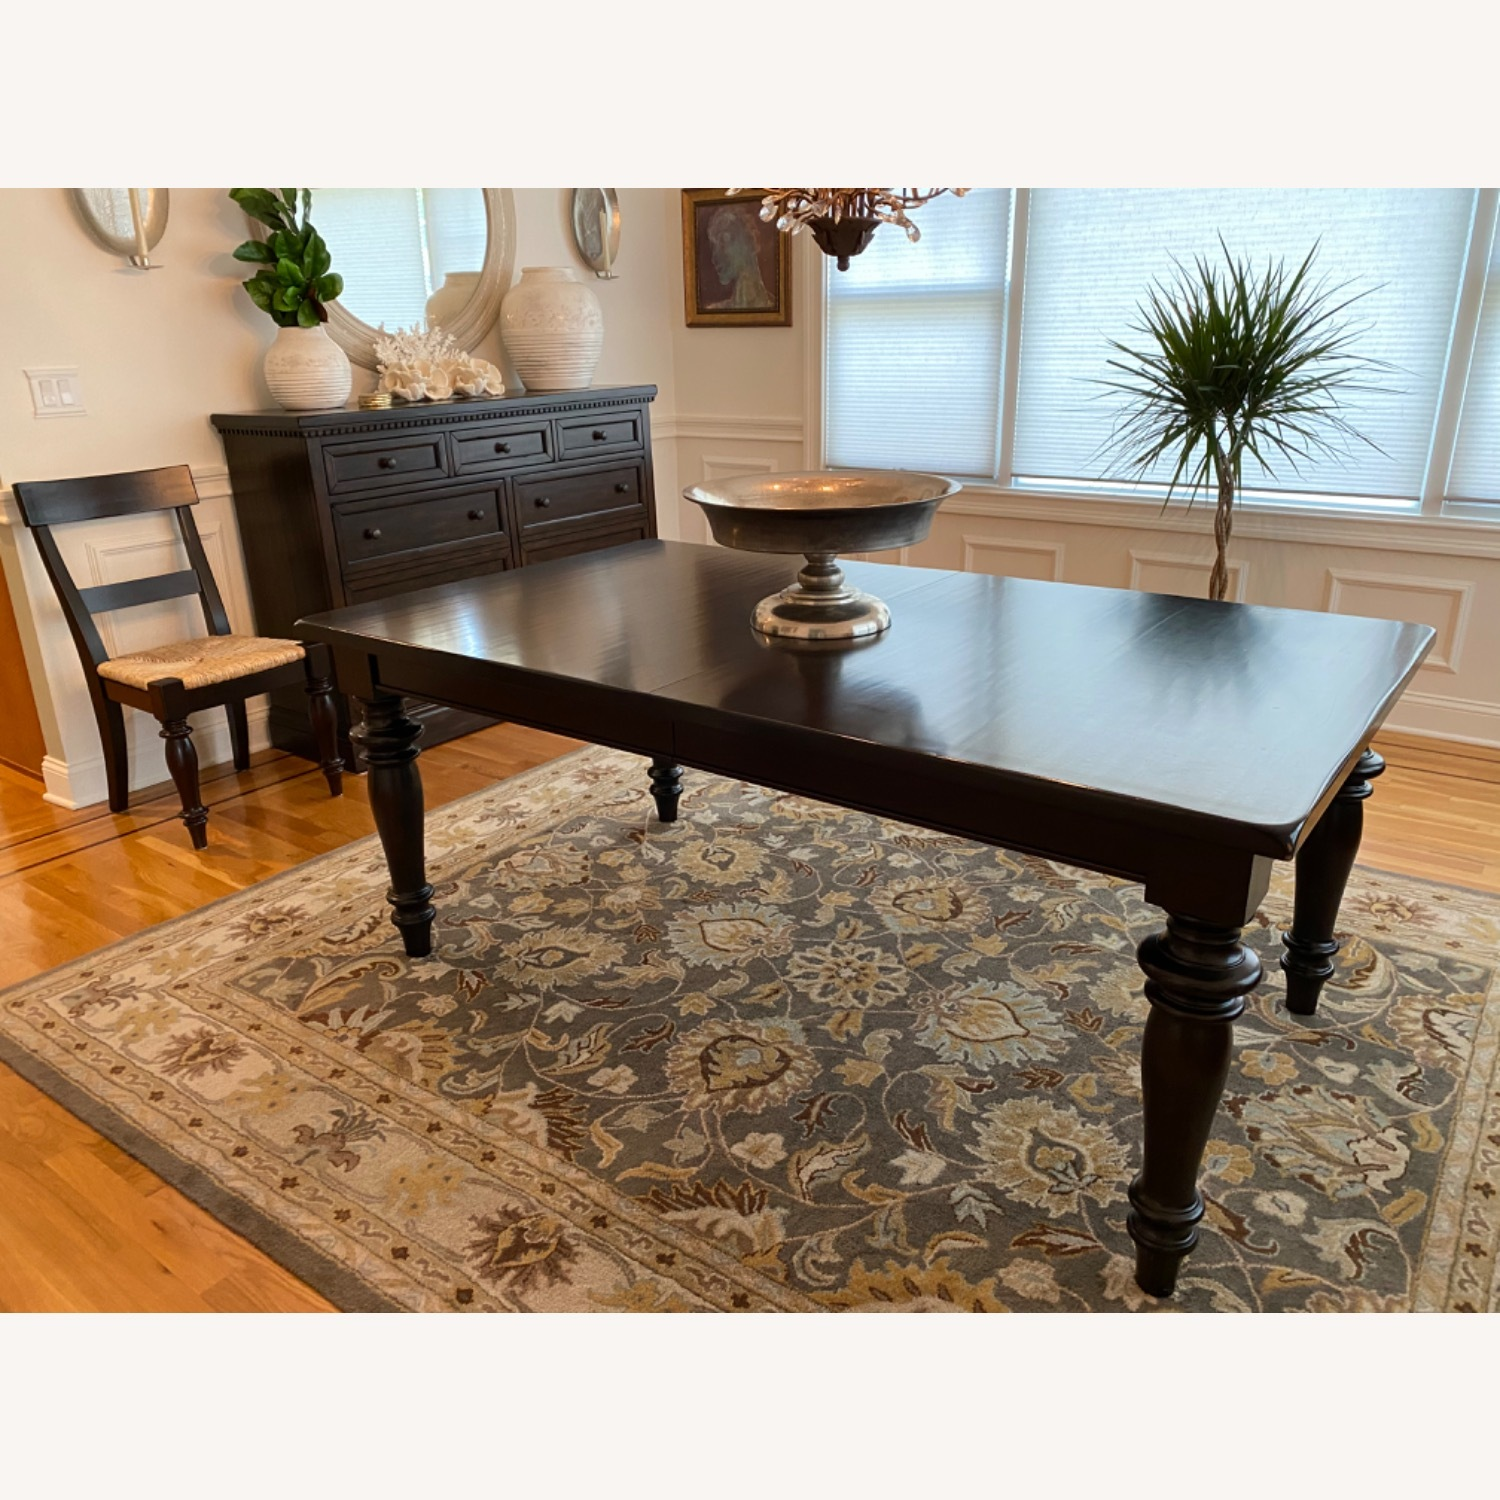 Pottery Barn Table and Chairs - image-2